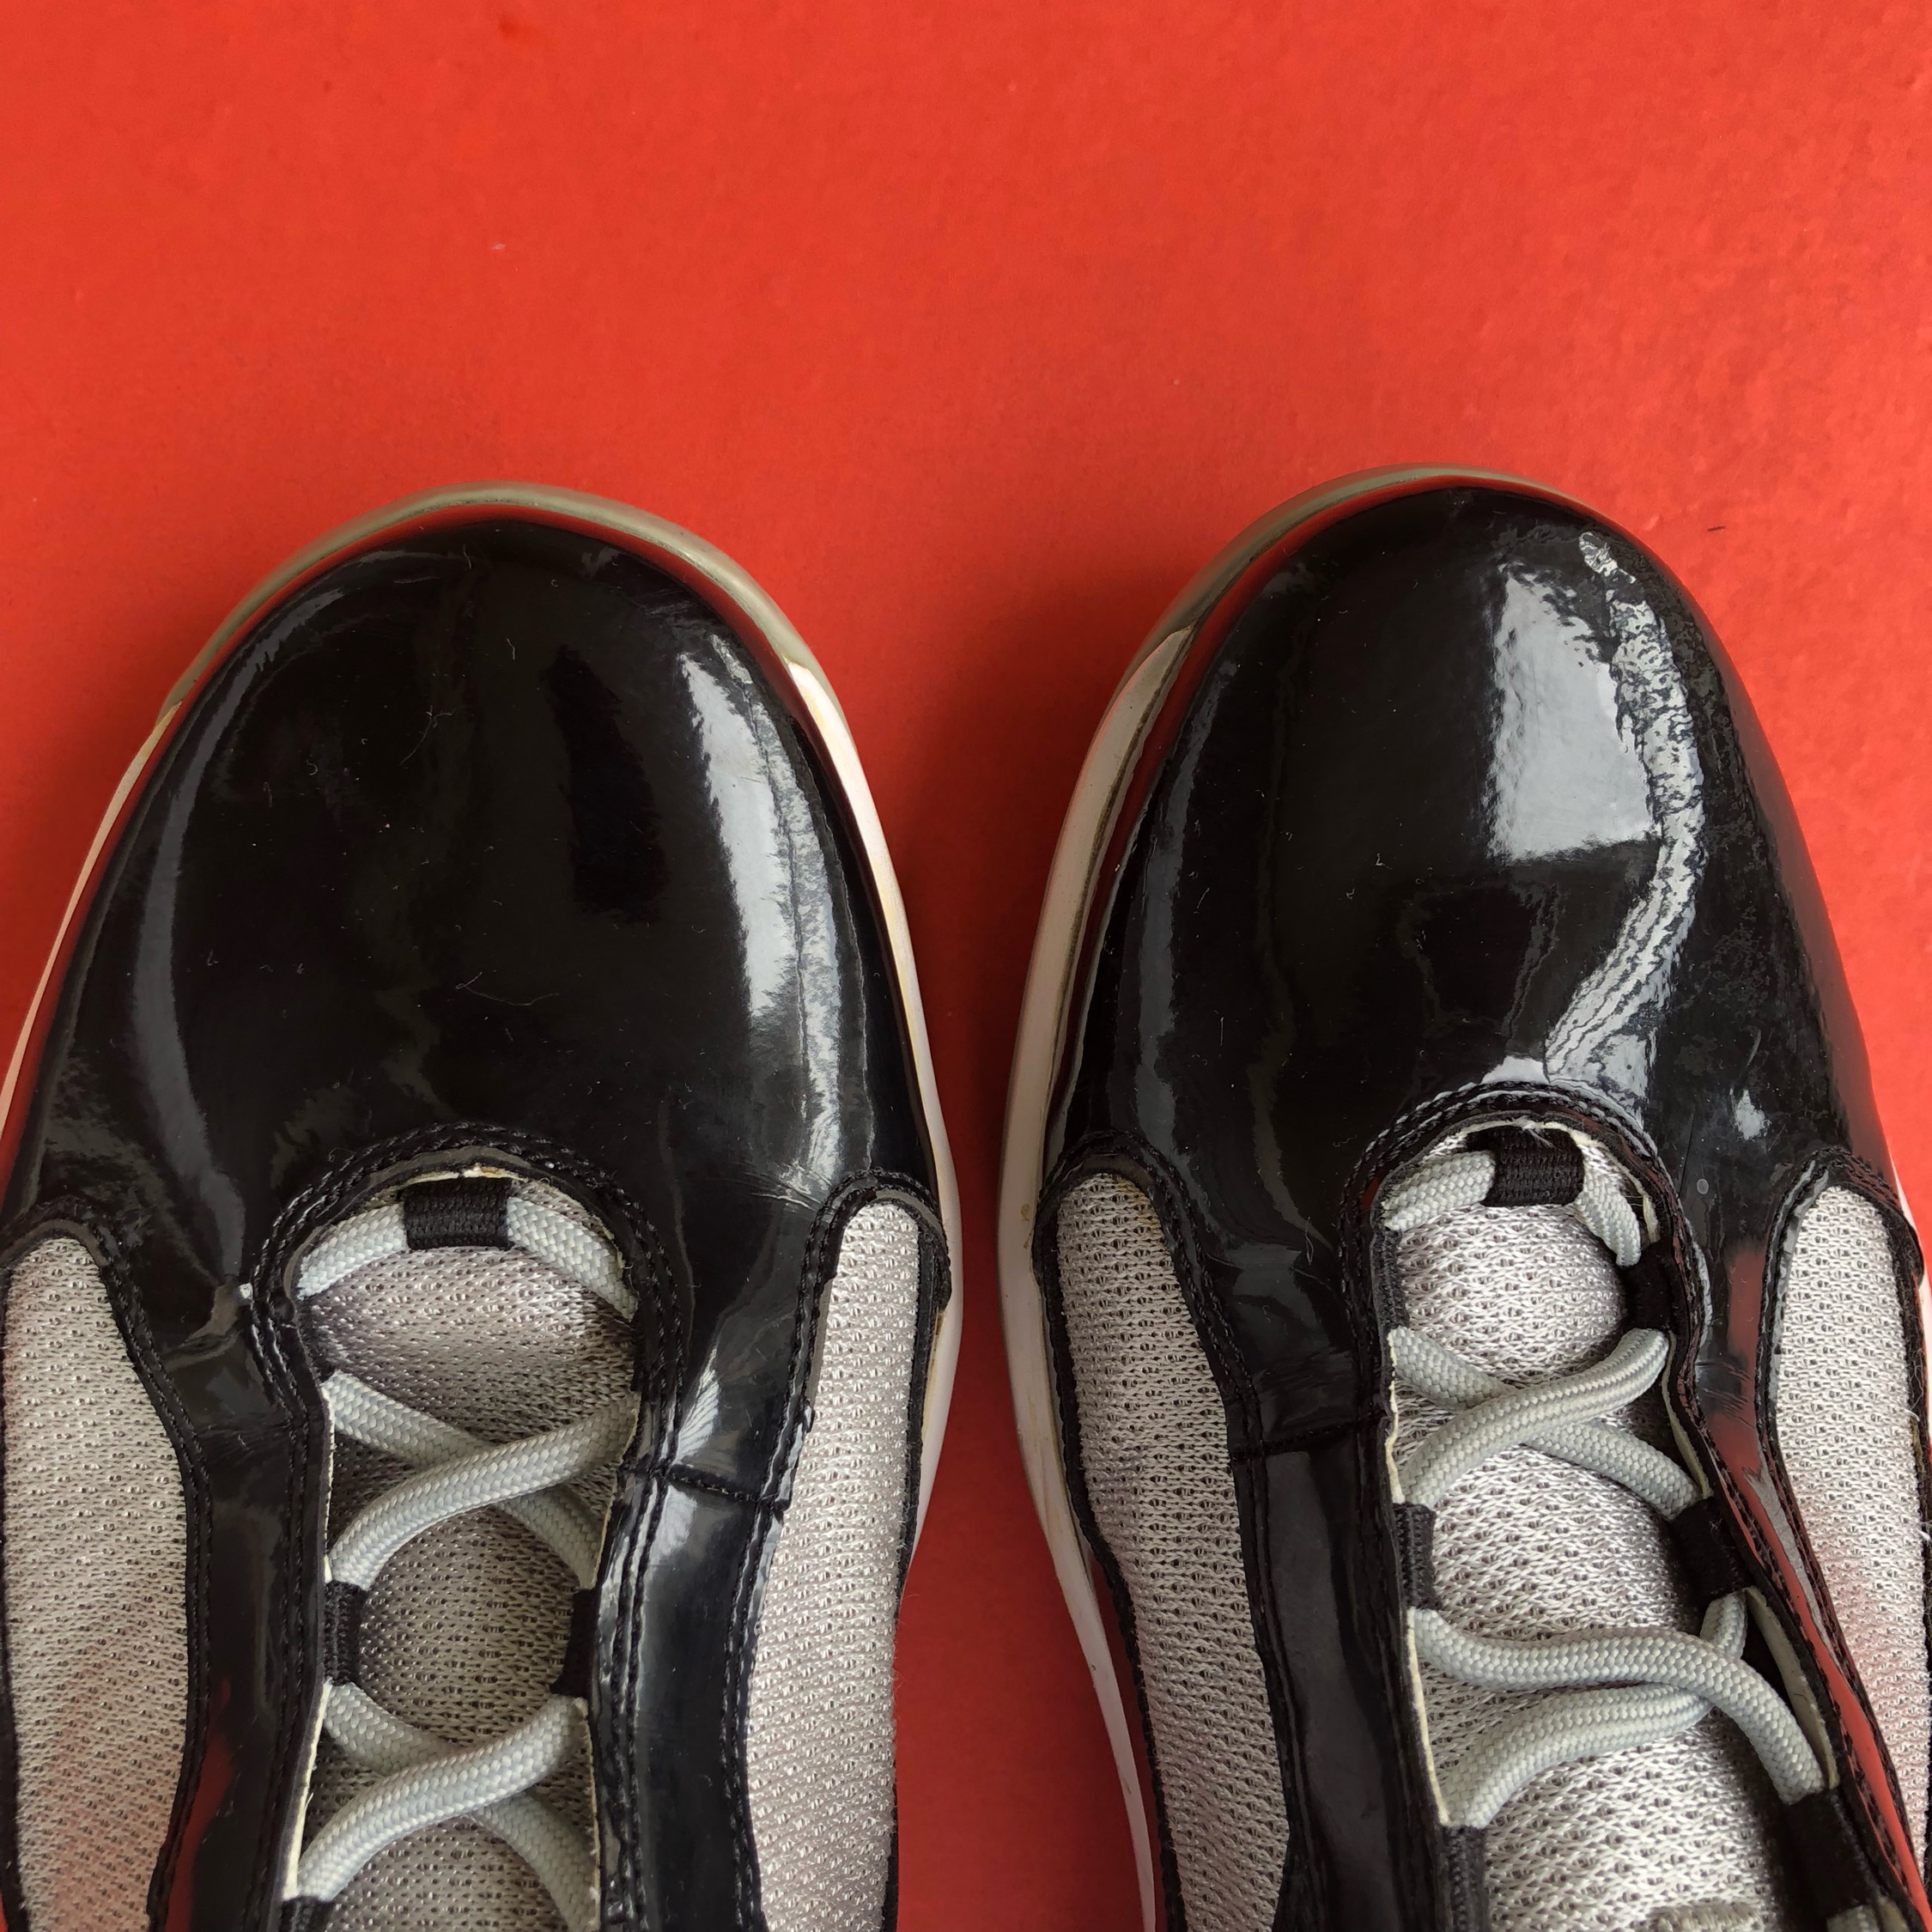 ad85f8742e Vintage Fila High Top Patent Leather Sneakers